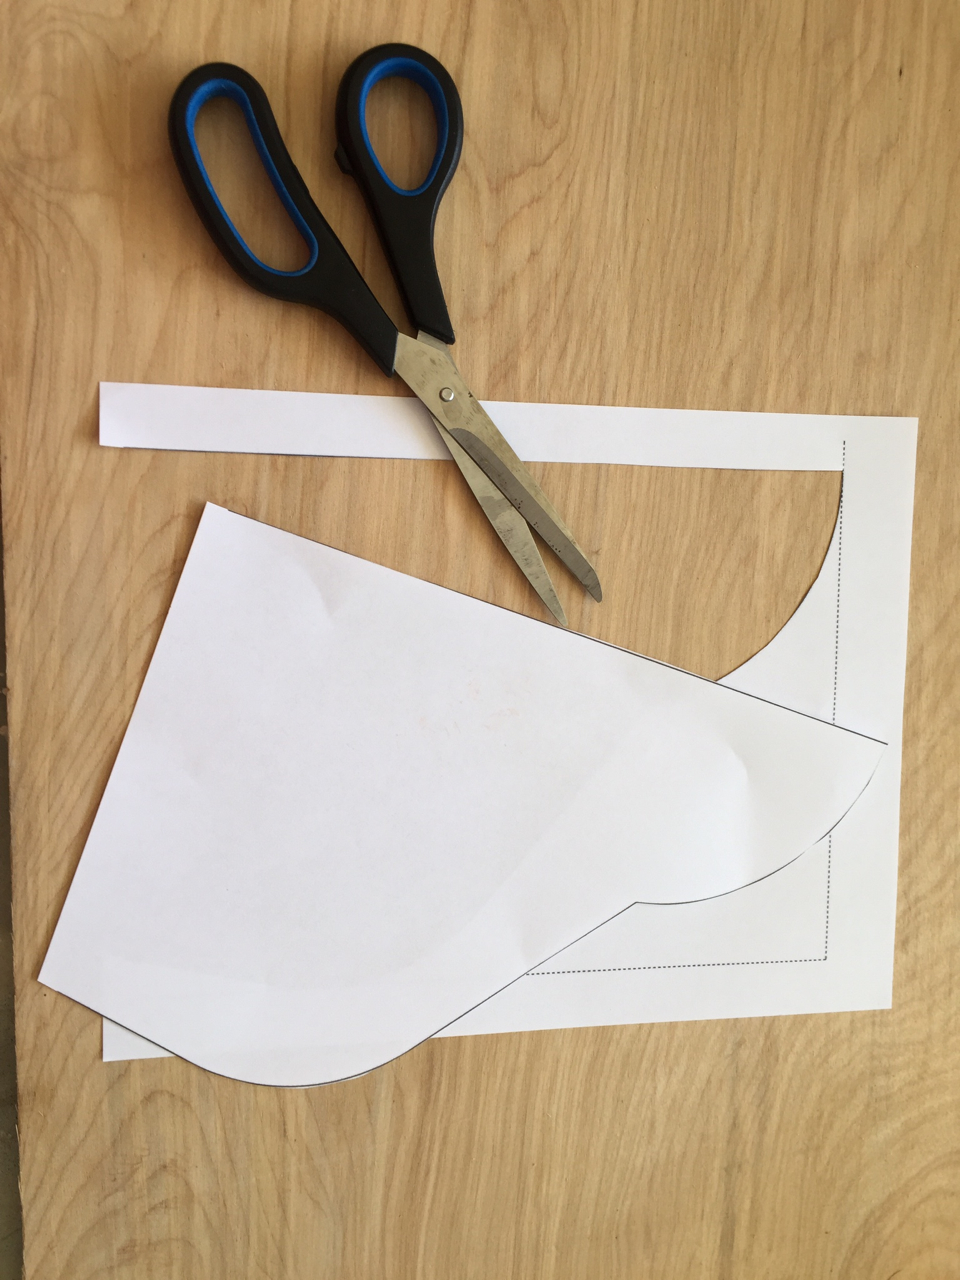 Picture of Cut Out the Templates